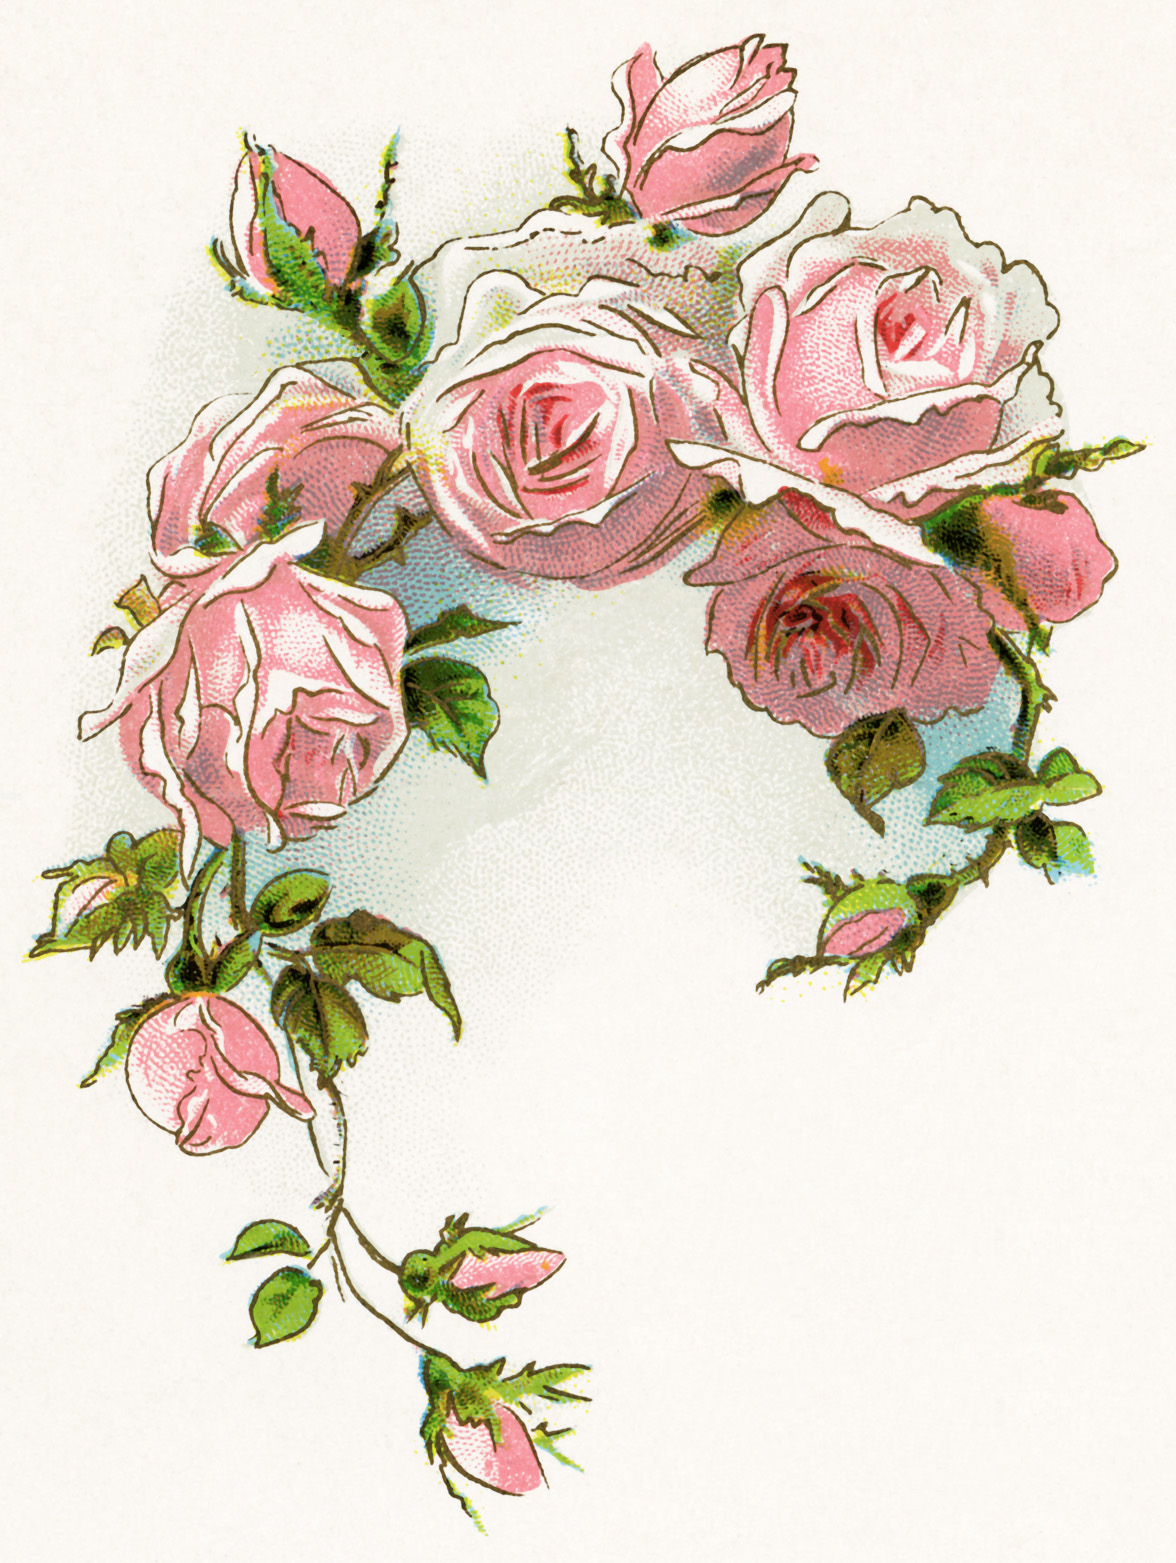 Clipart images of old fashioned roses.